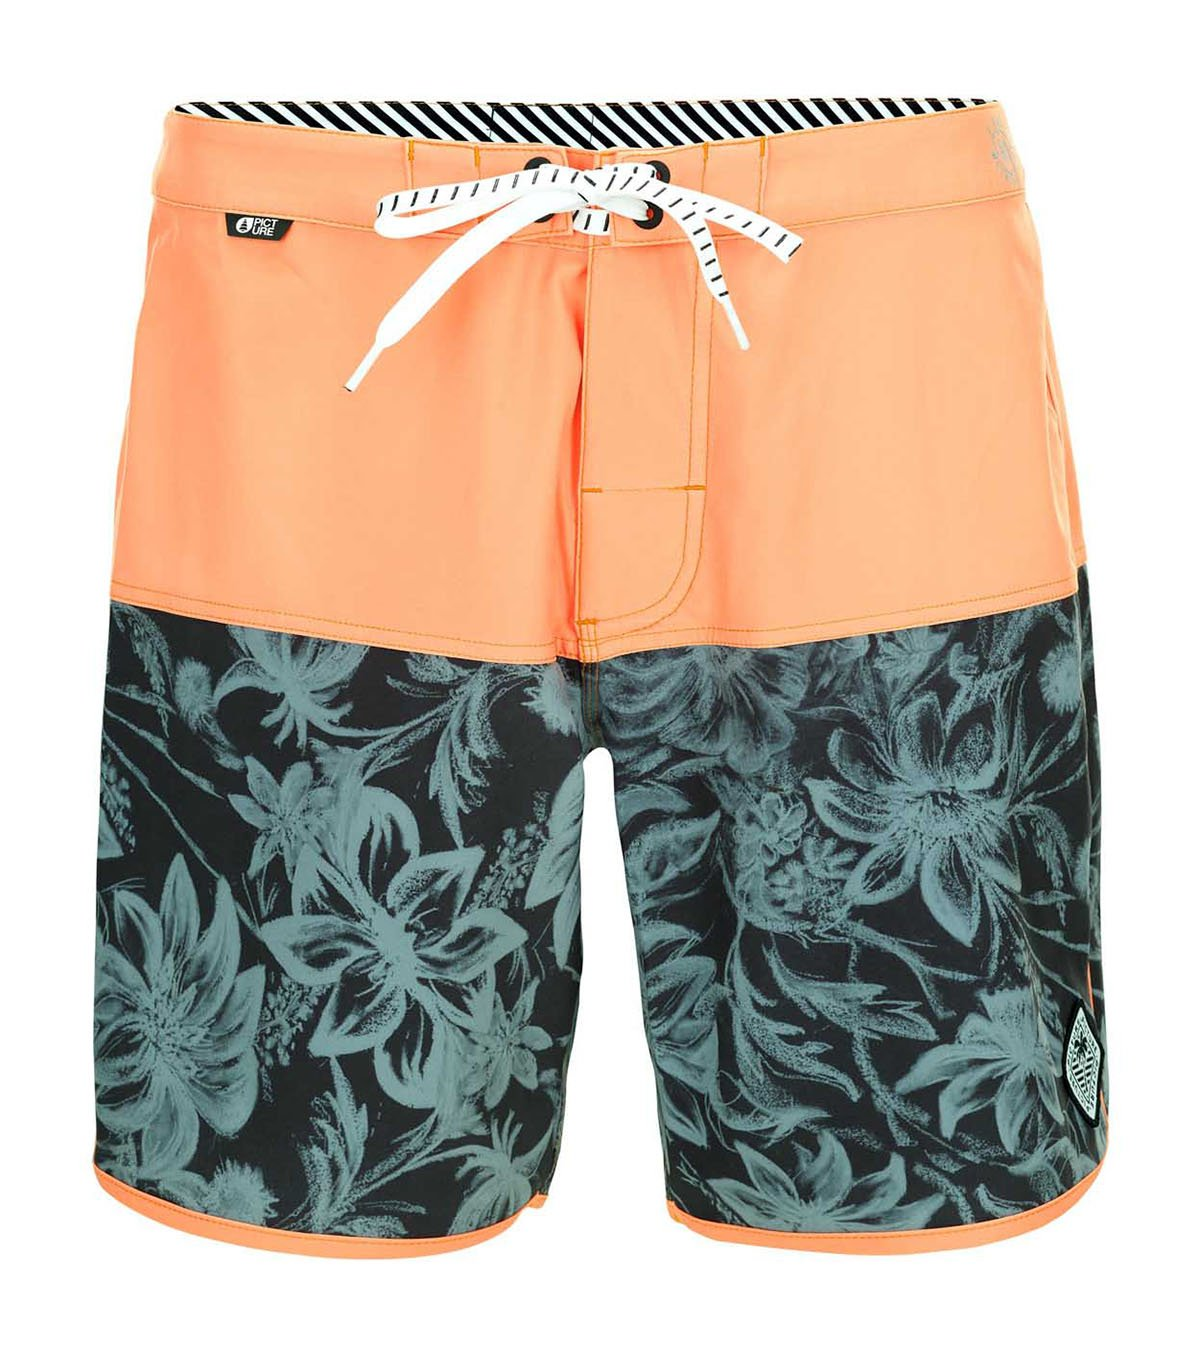 Picture Andy 17 Boardshorts